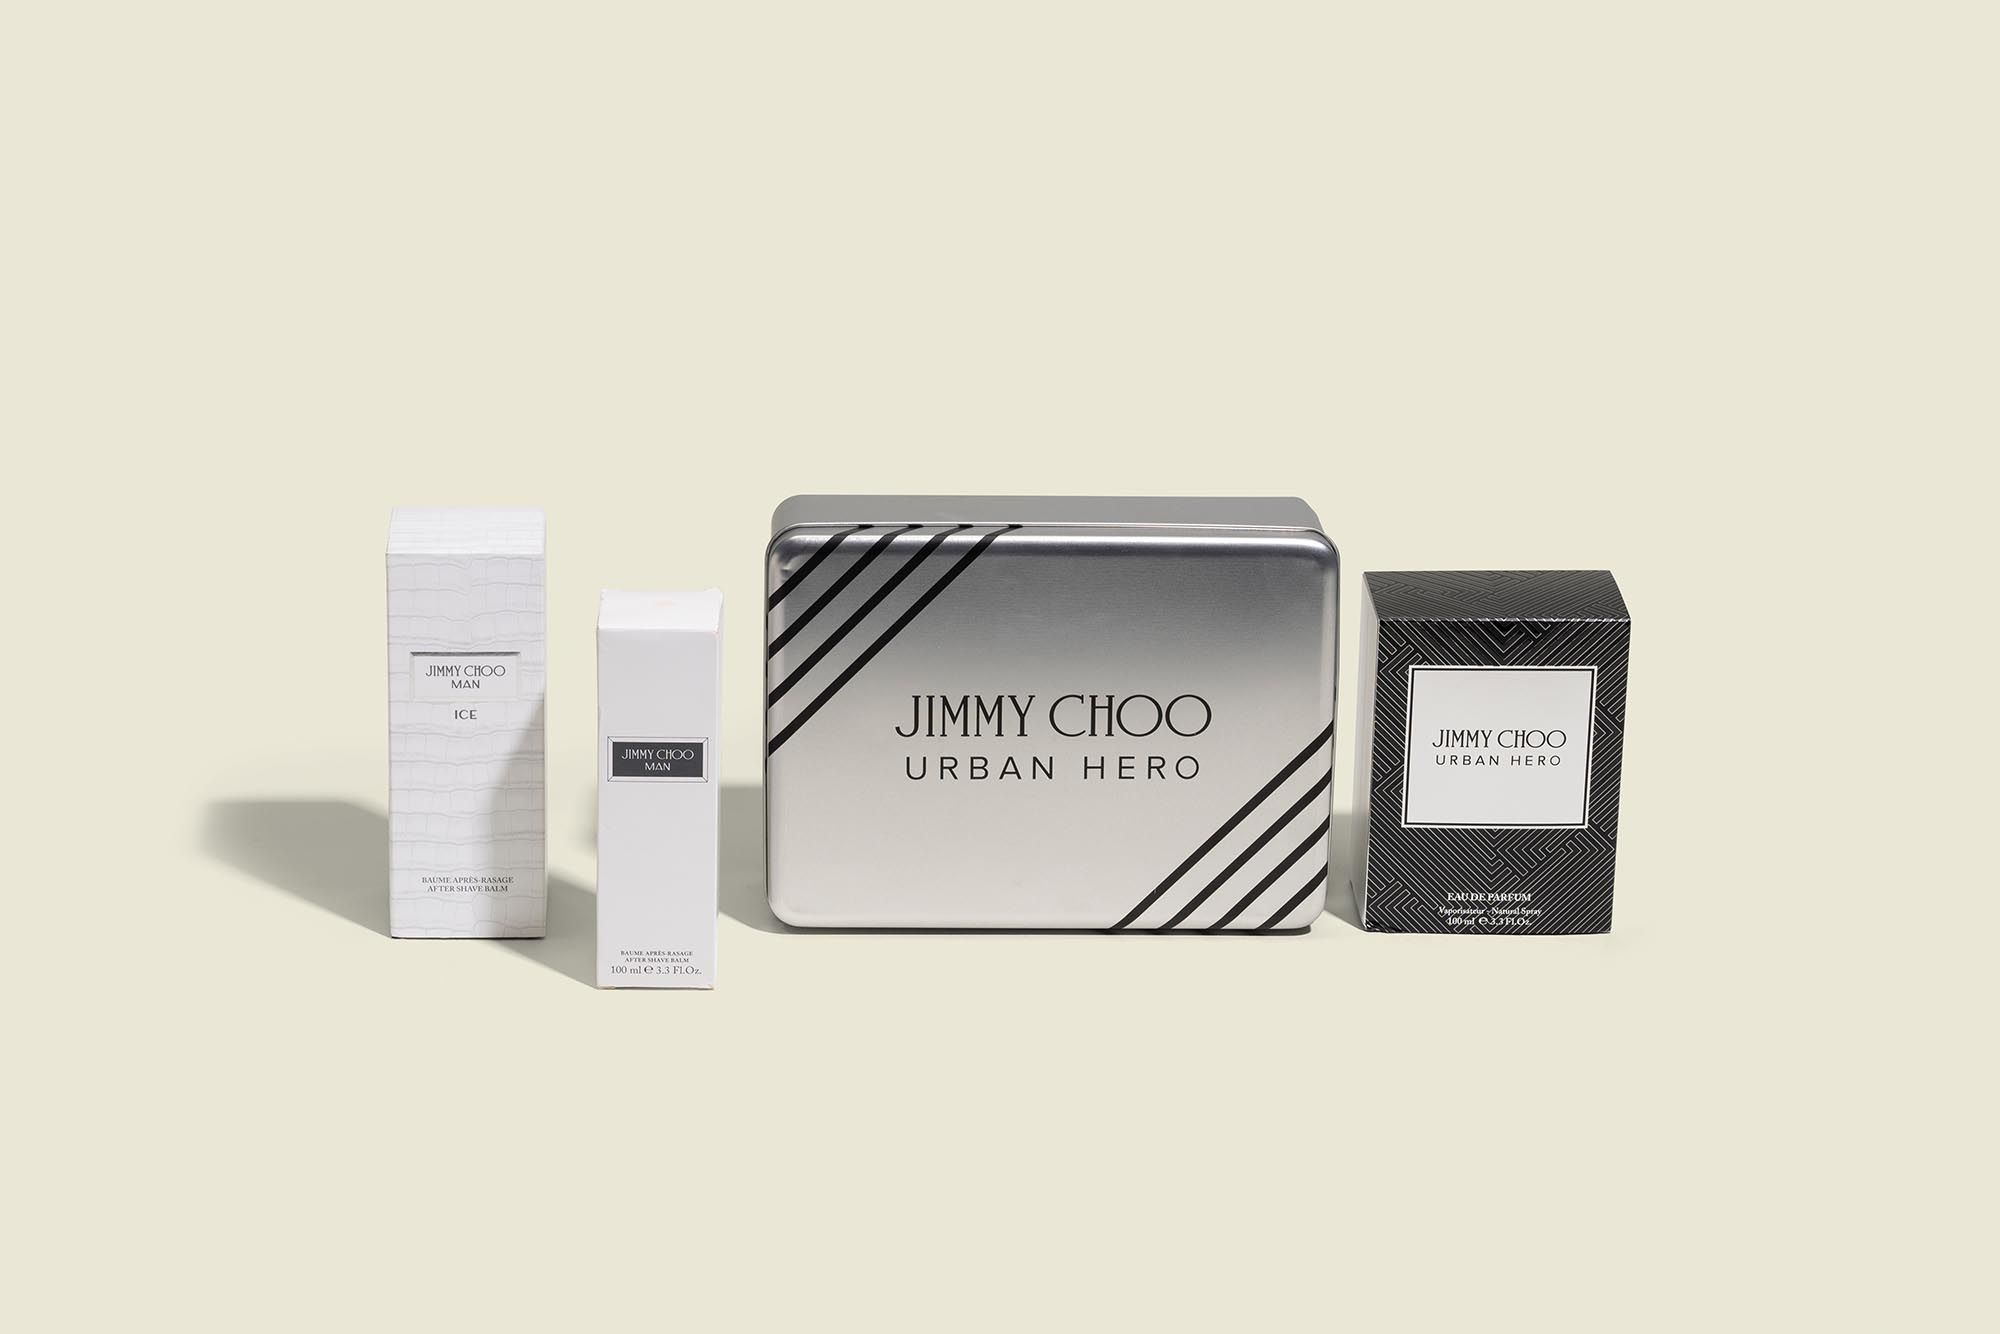 Custom packaging with stainless steel container